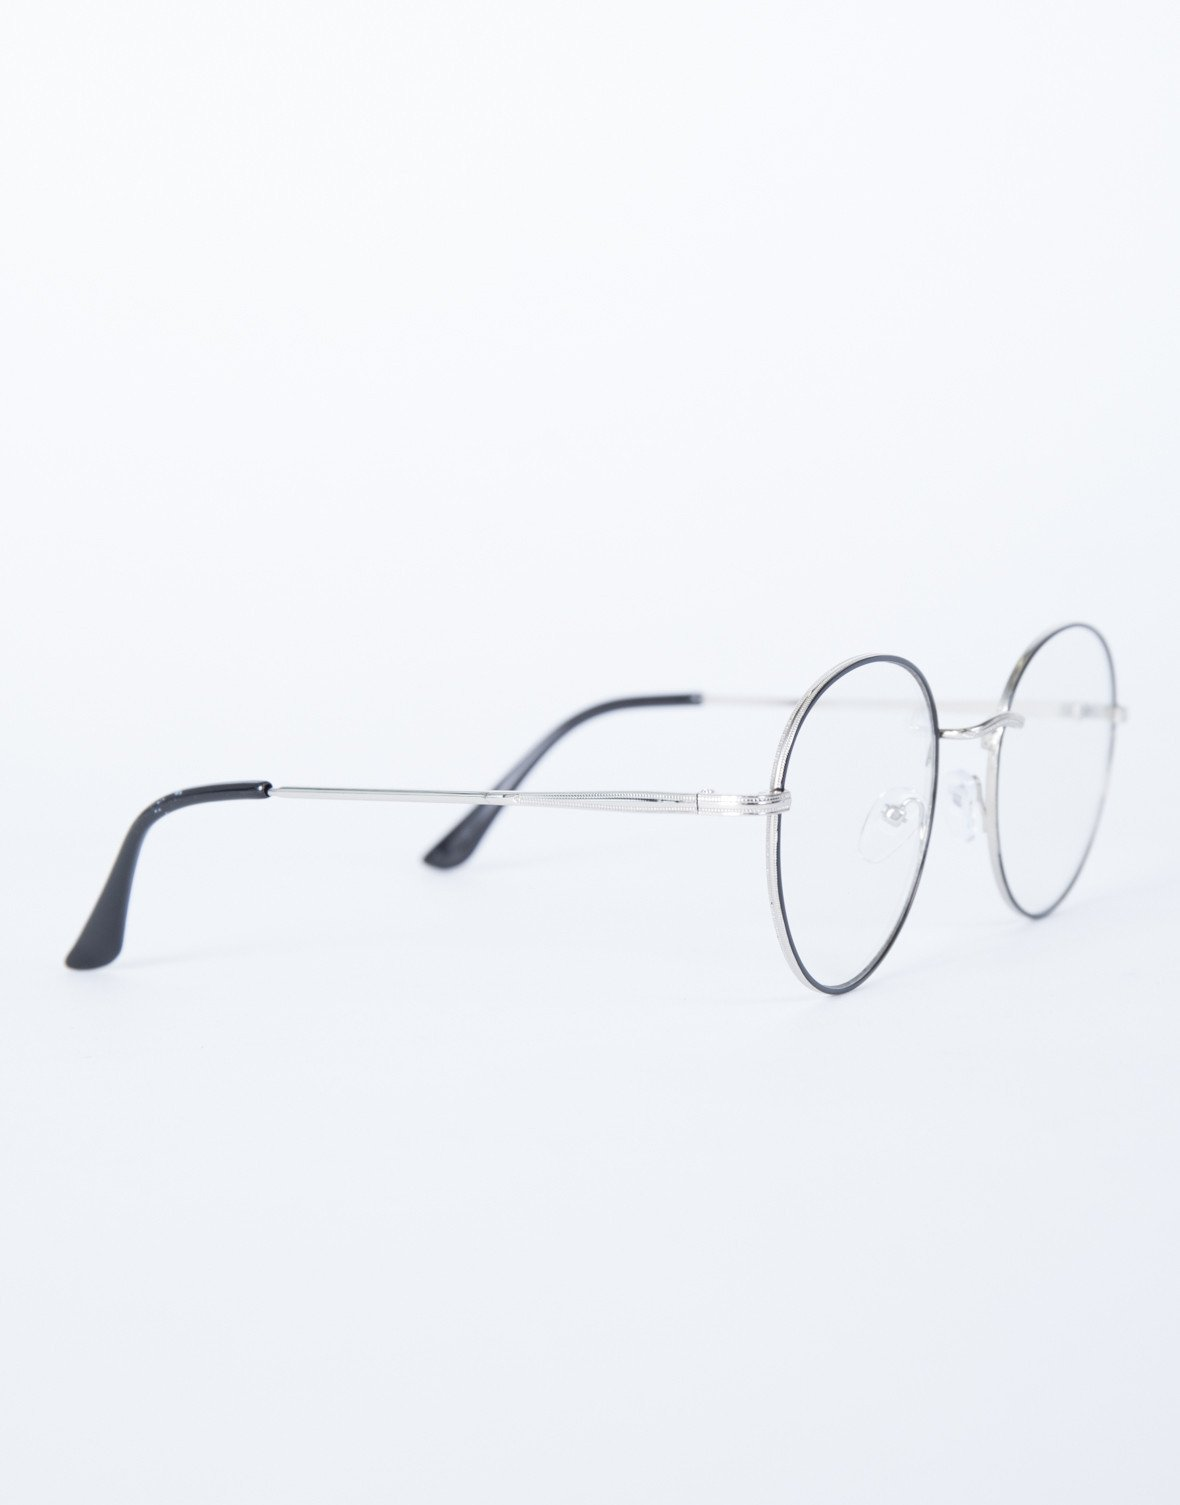 1180x1505 Clear View Round Glasses 2020ave